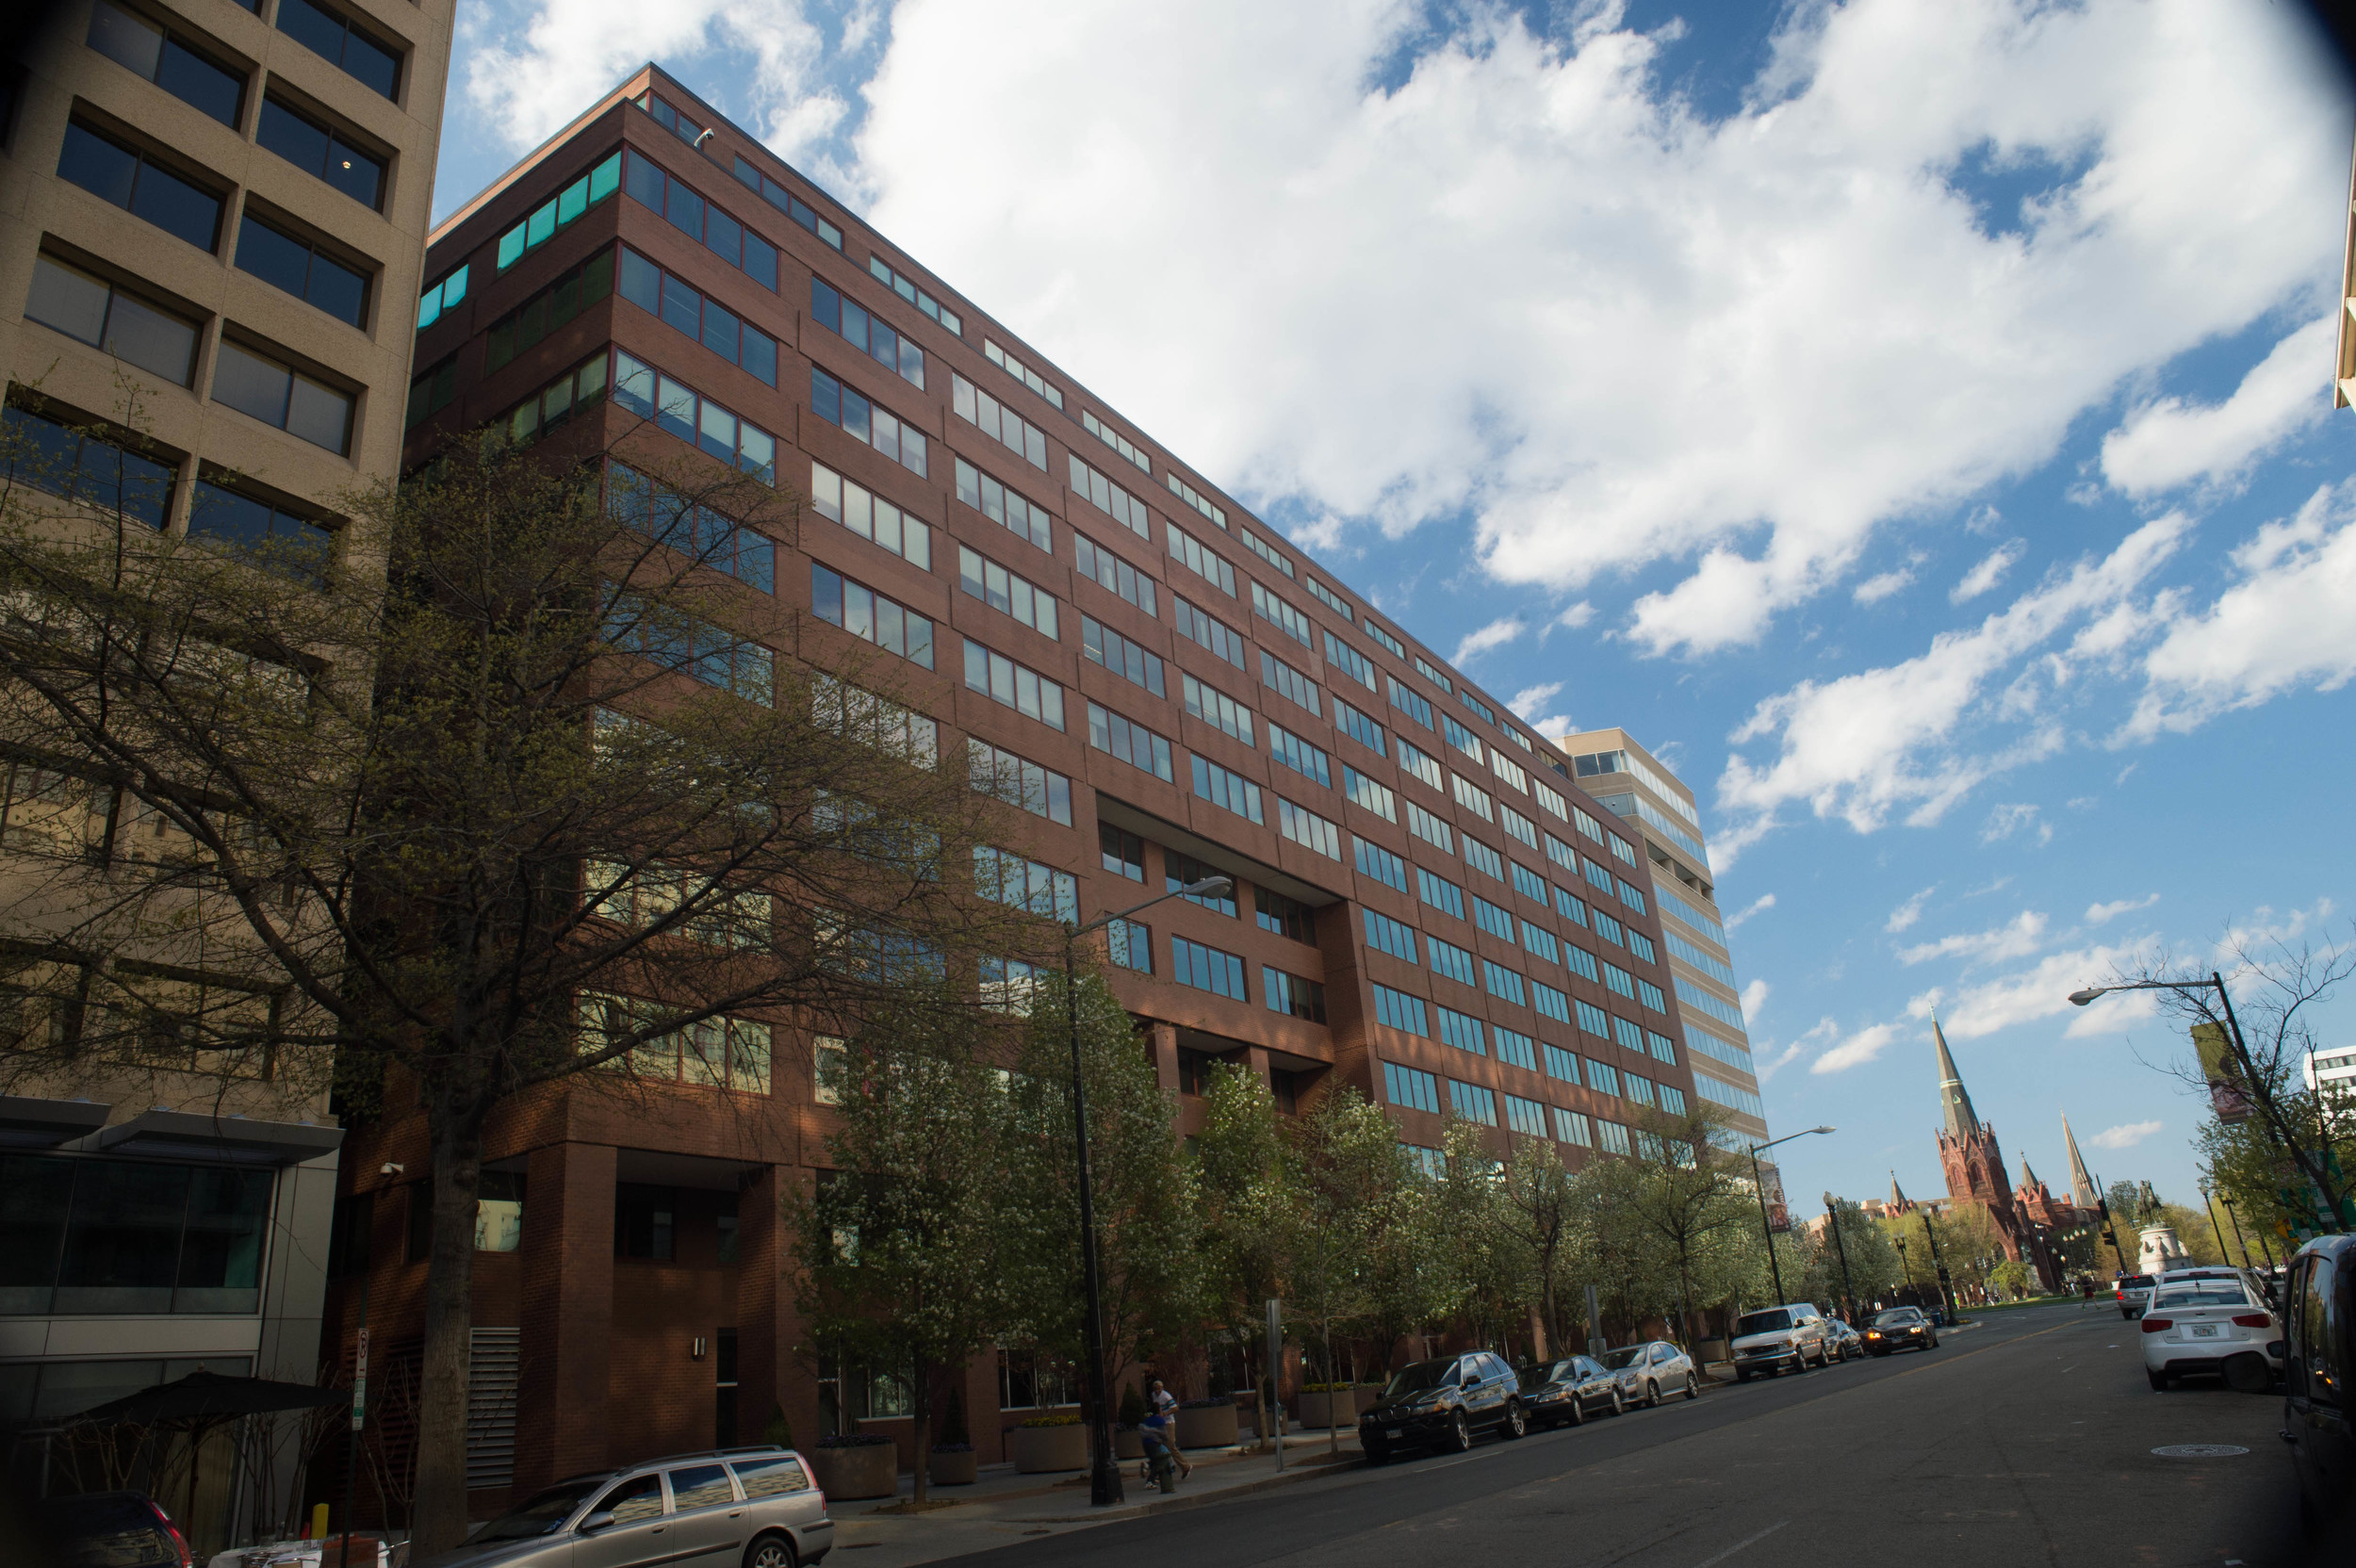 1120 Vermont Ave, NW; Washington, DC 20005   Developed a 500,000-square-foot office building in northwest Washington, DC in 1979.